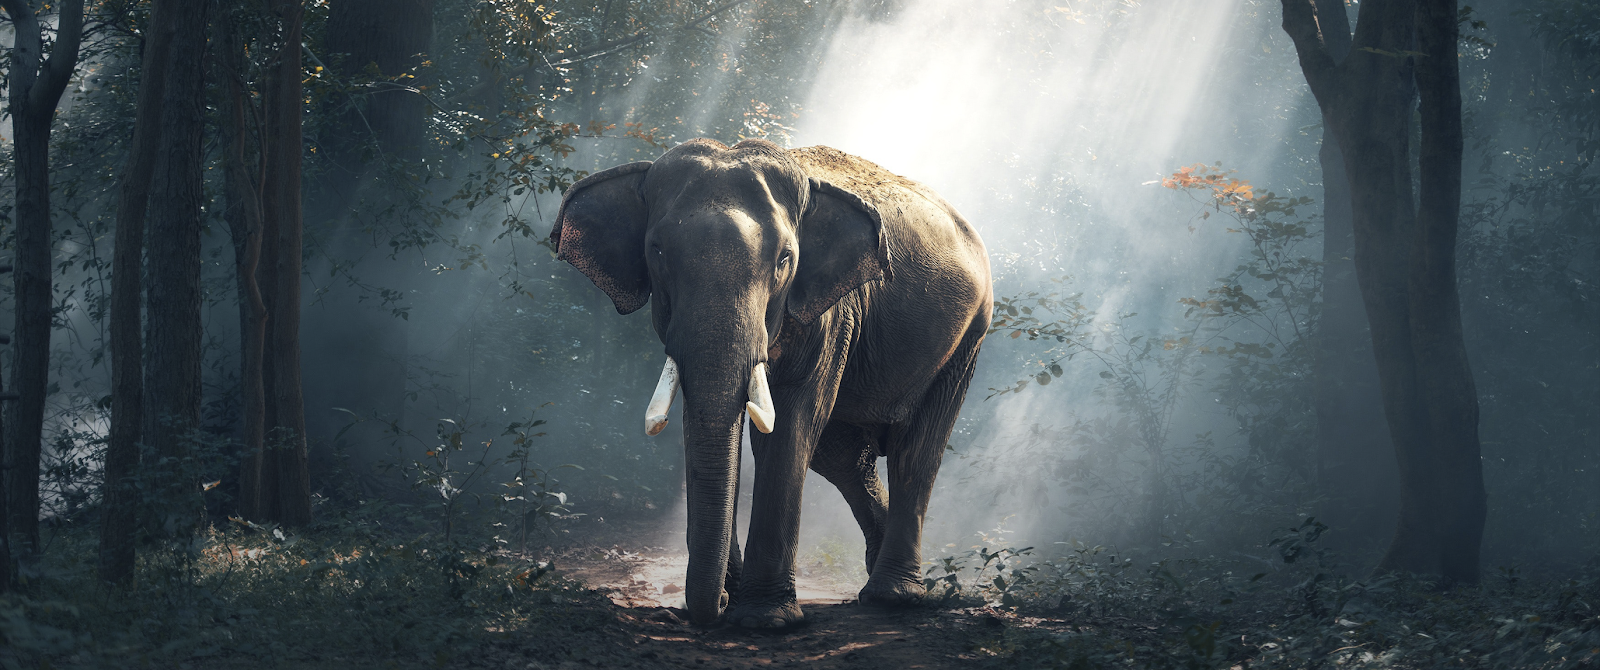 ELEPHANT WALLPAPER ULTRA WIDE